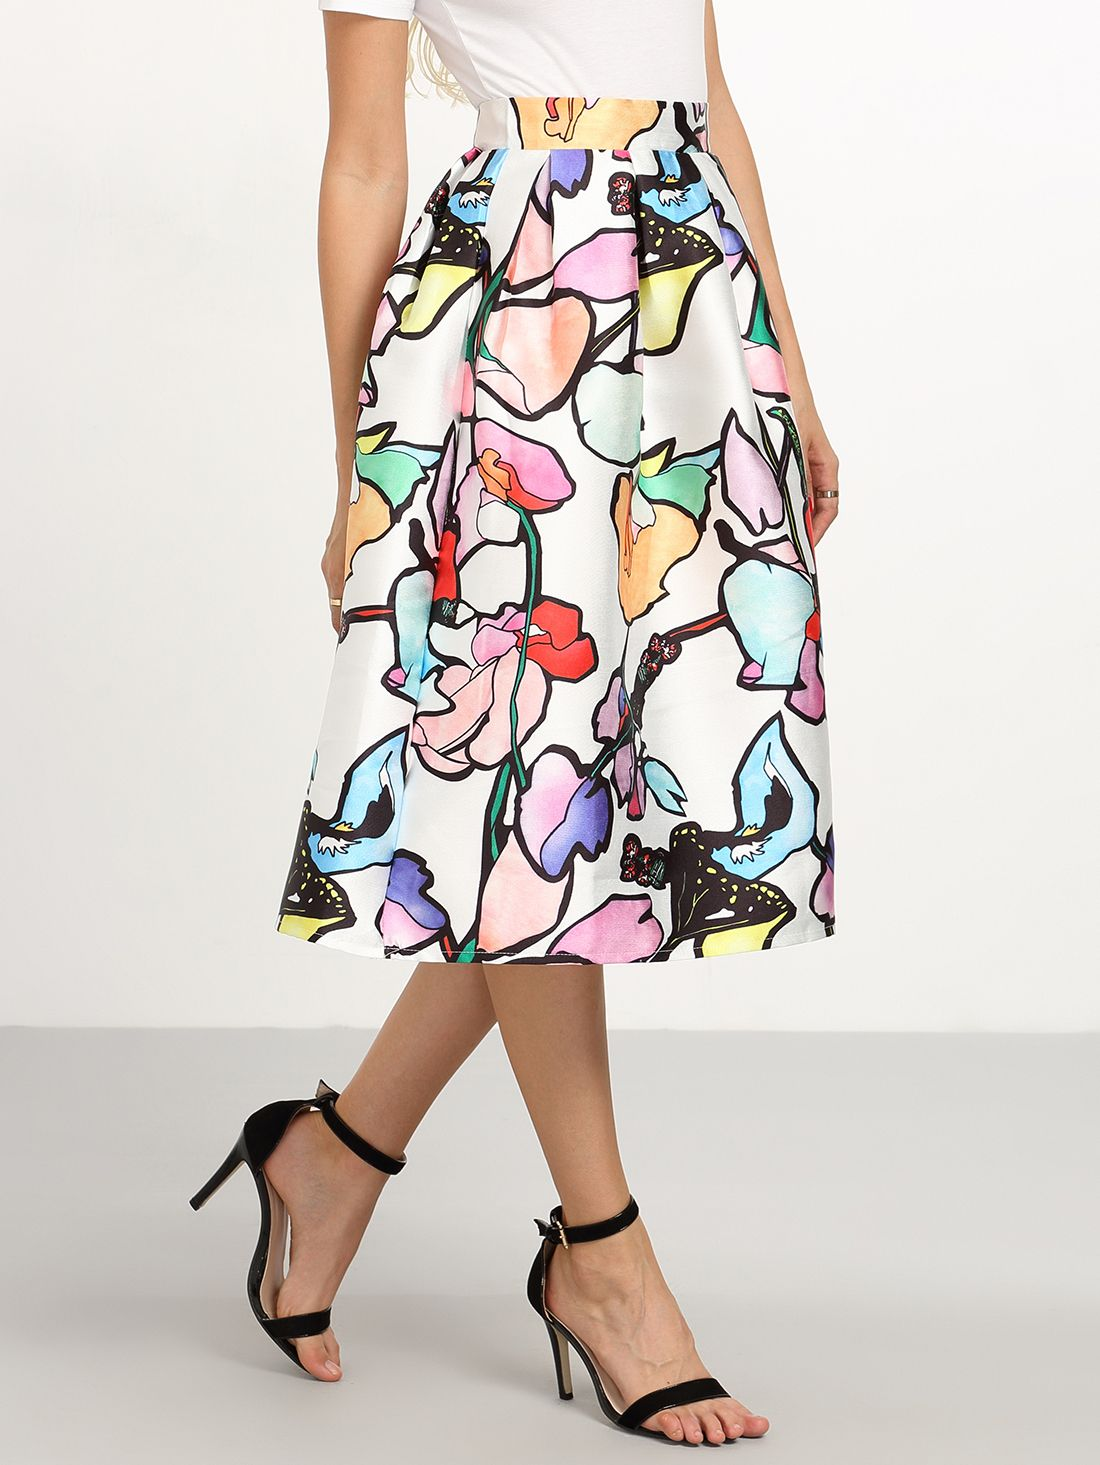 Multi color Branch Print Midi Skirt - SheIn #skirt #pretty ...